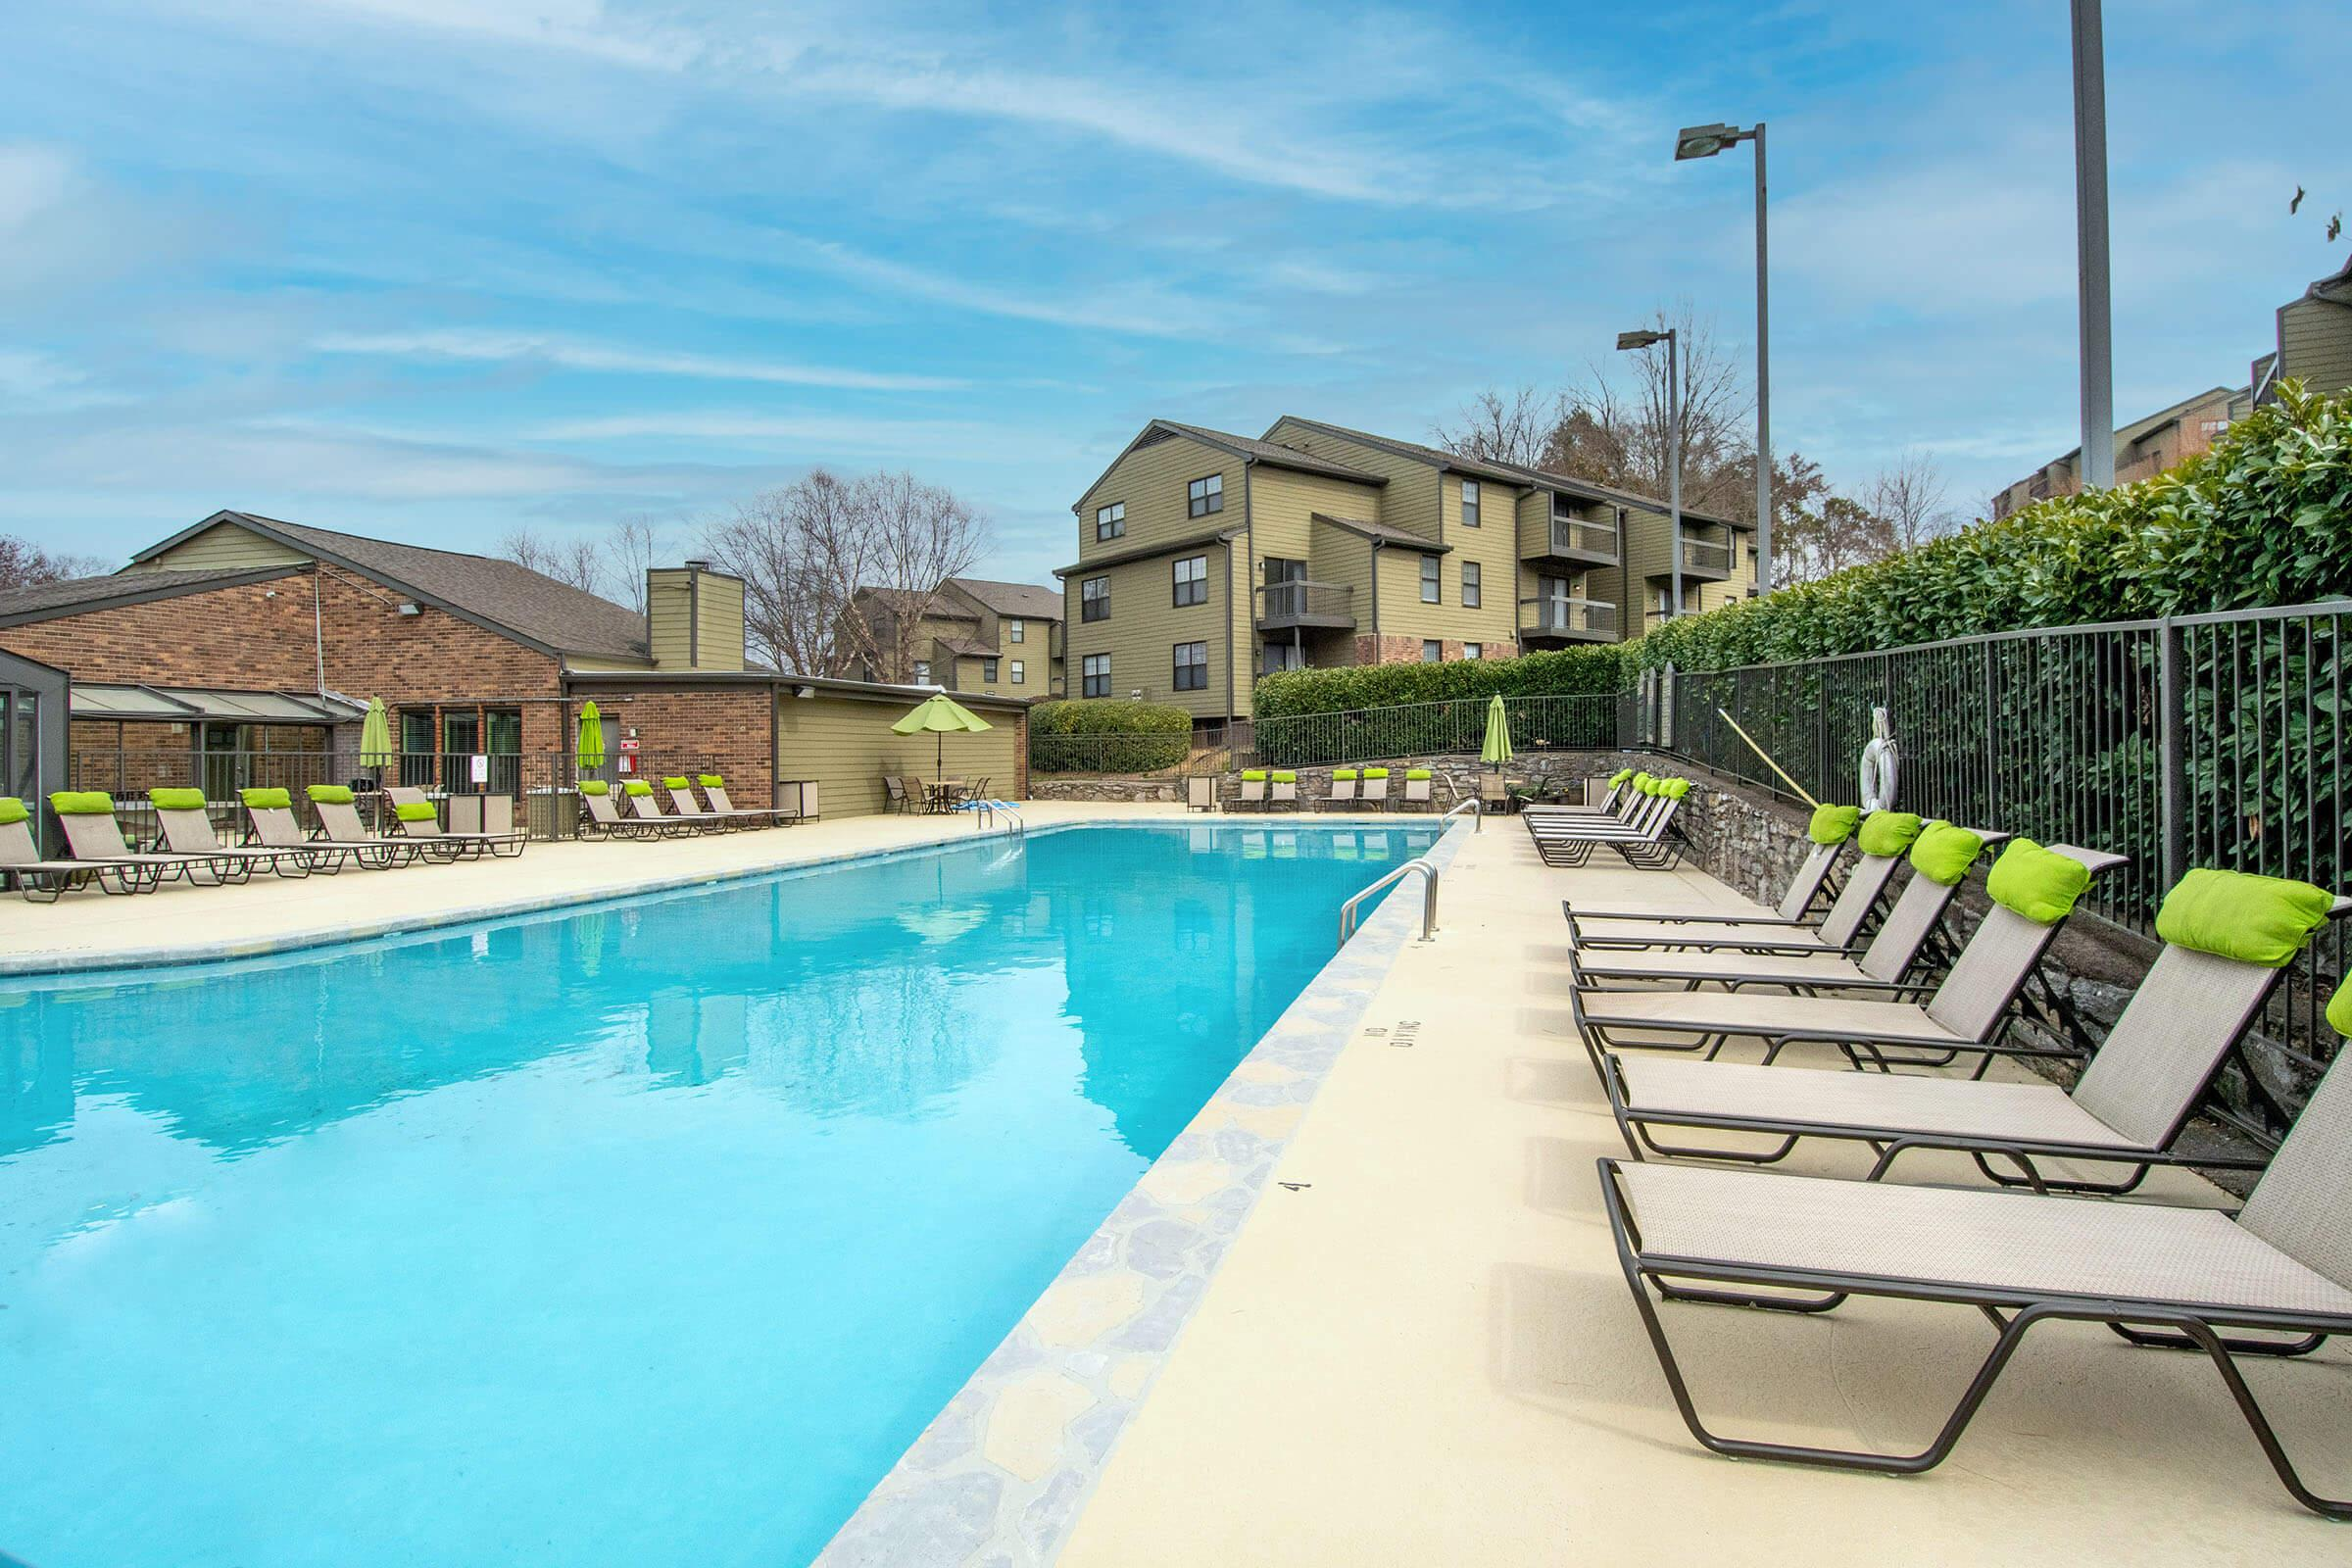 Sundeck by swimming pool